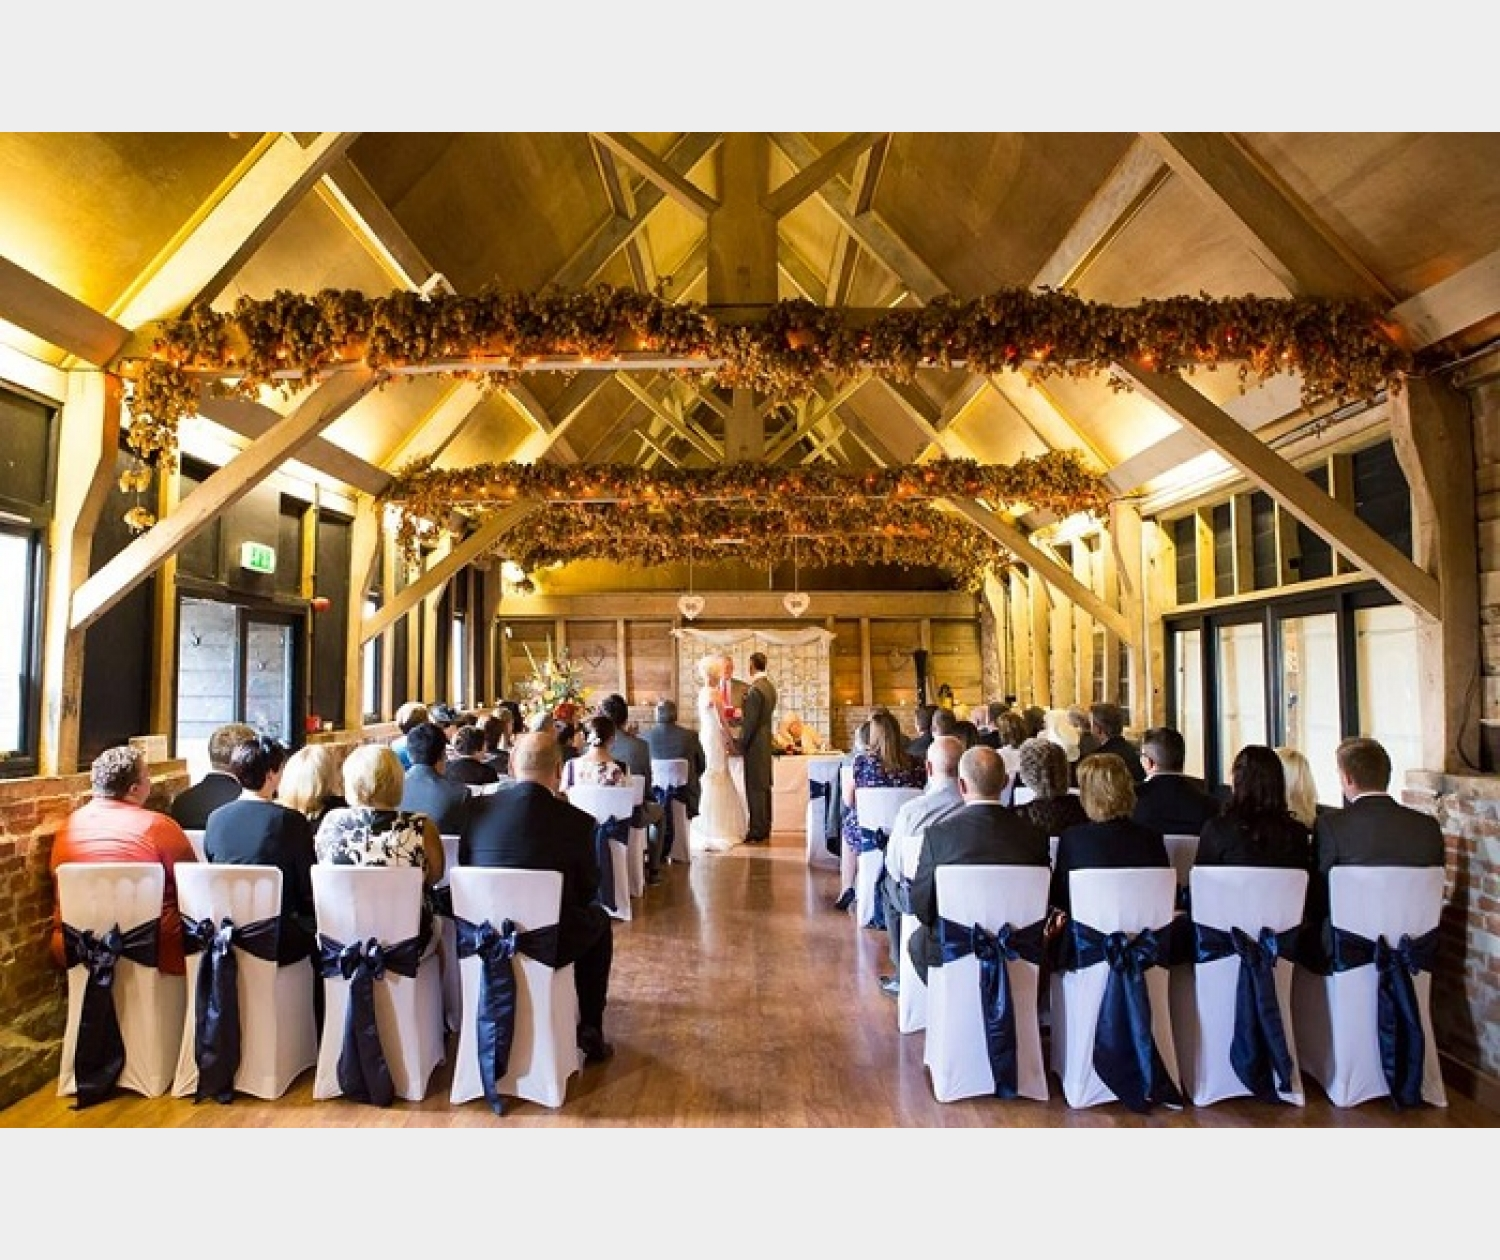 Wellington Barn (Nr Calne, Wiltshire) Wedding Show